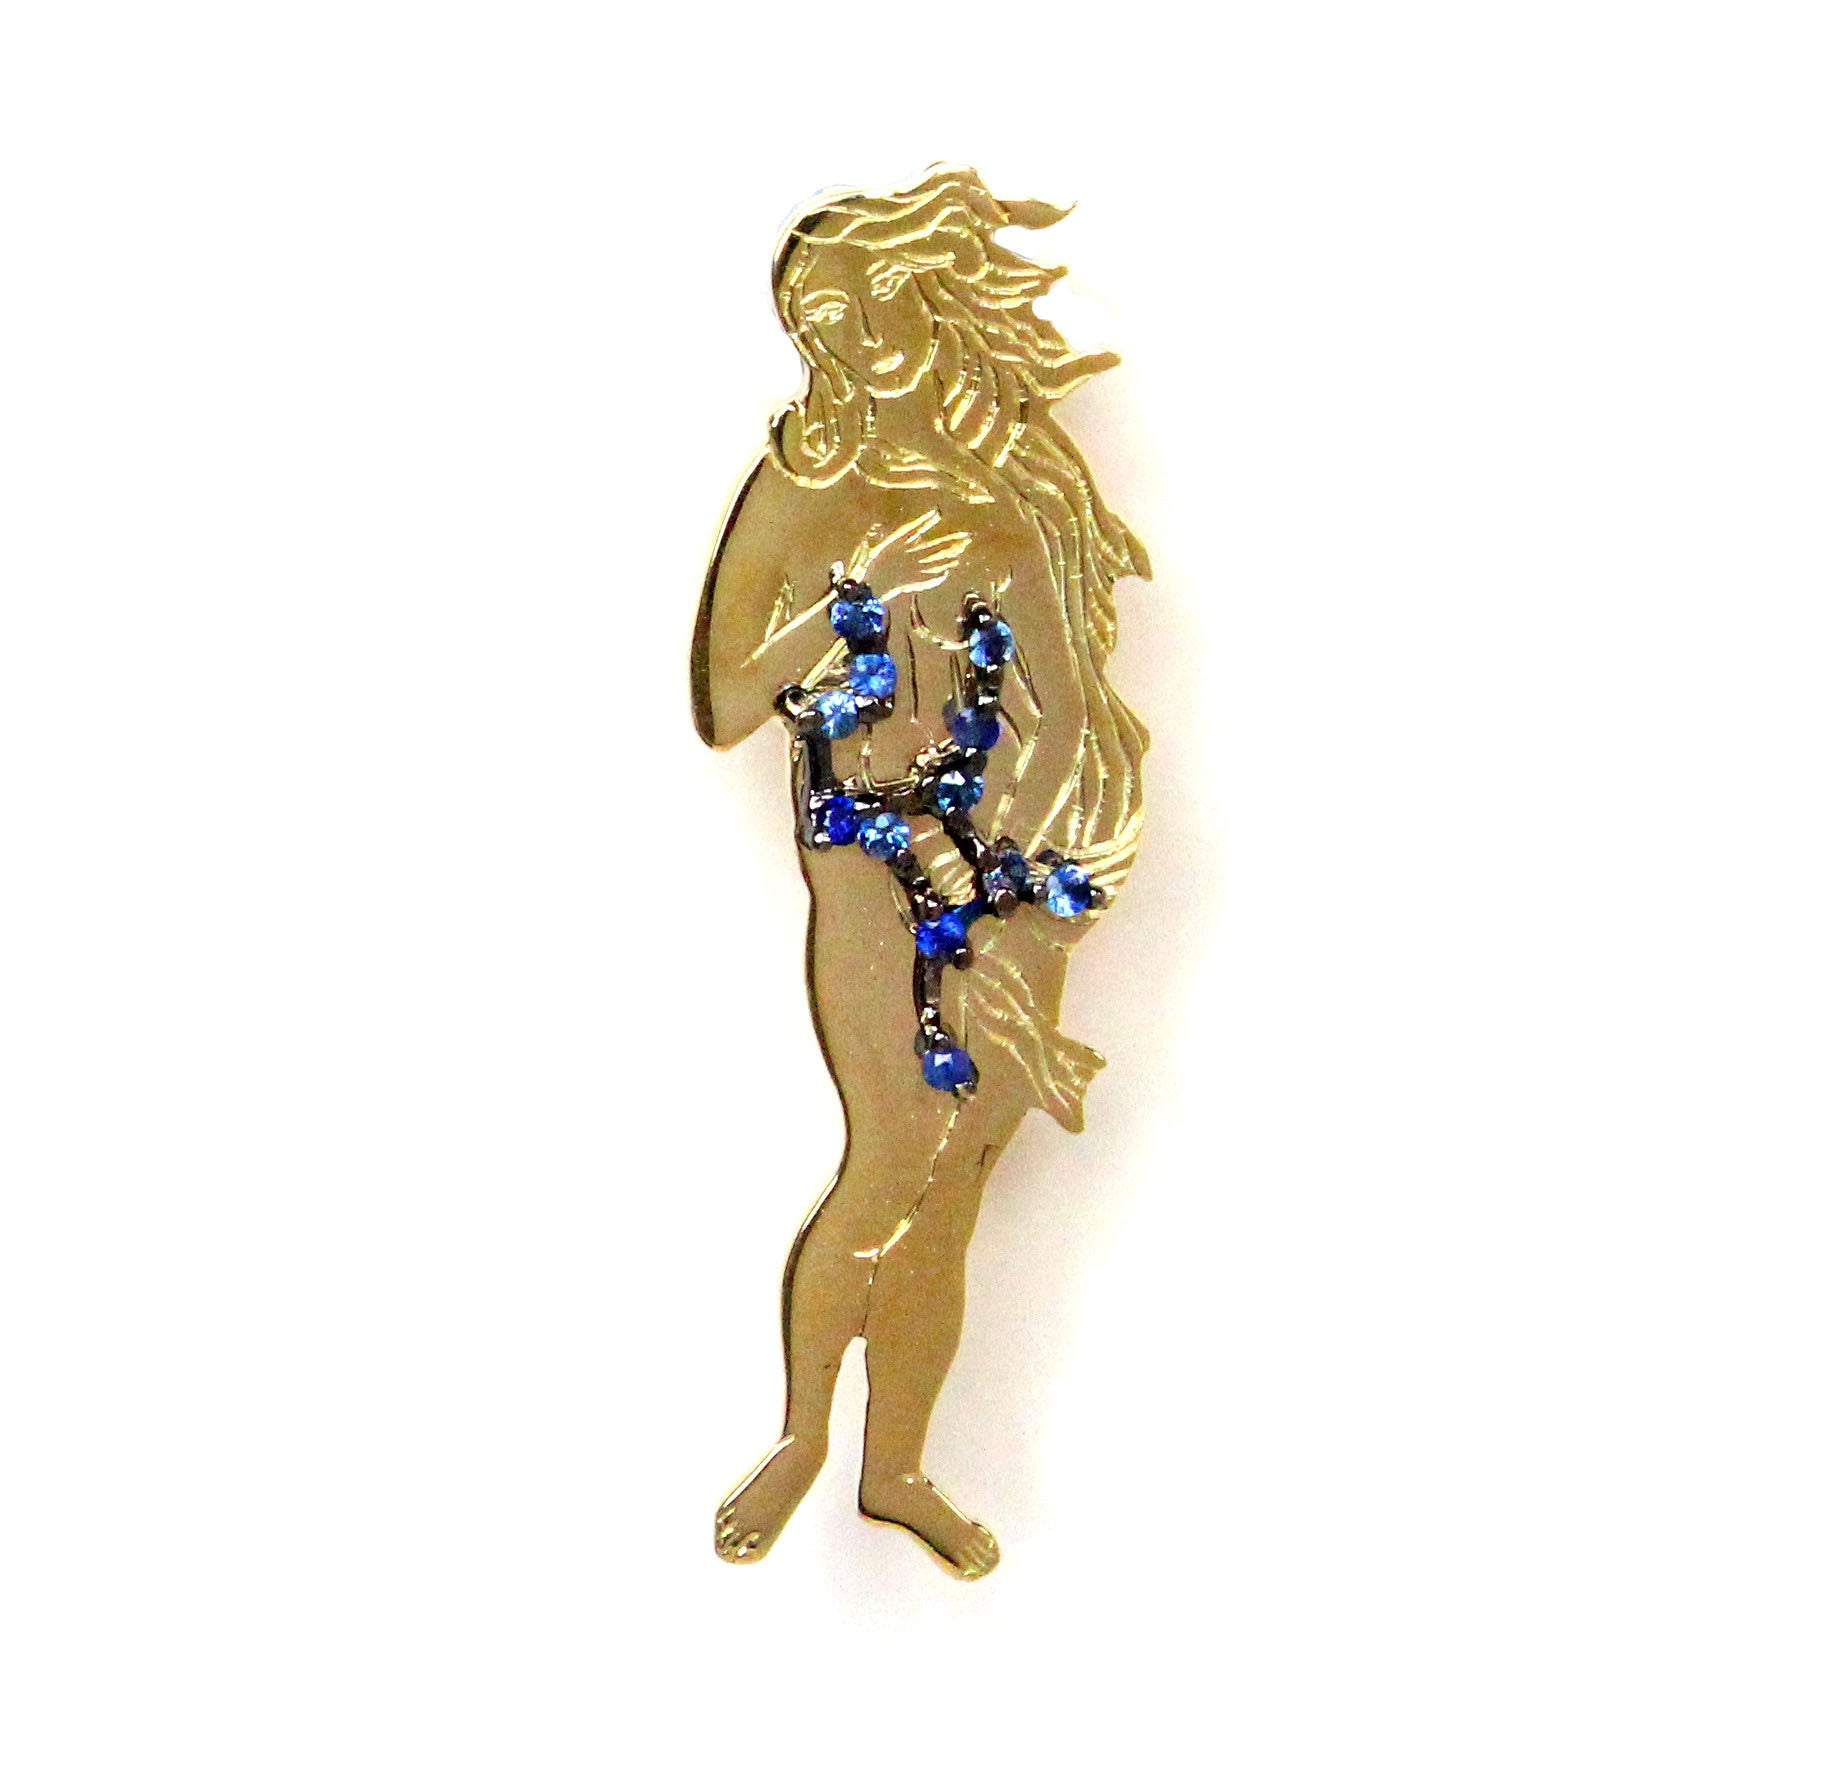 Virgo star sign as Botticelli's Venus in solid gold Virgo constellation blue sapphire birthstone black gold pendant - CLICK HERE - Sarah Hughes - 2